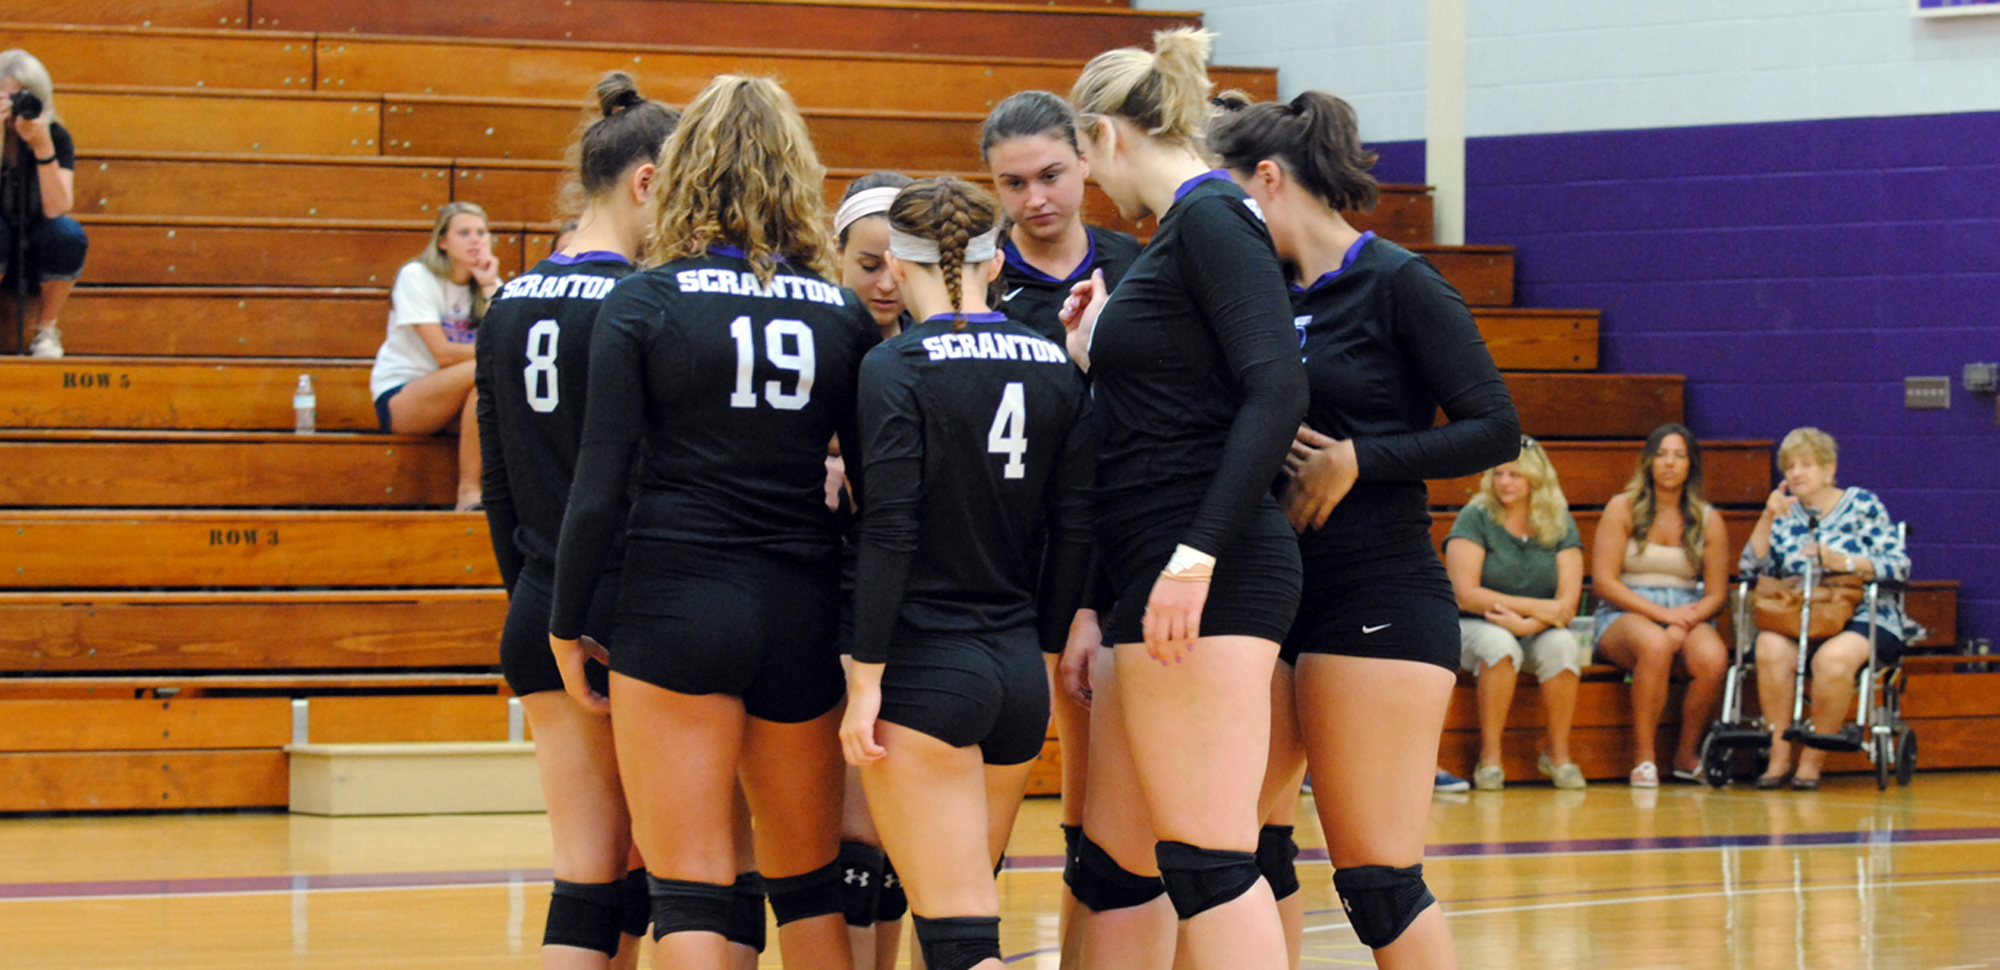 The women's volleyball team has earned the AVCA Team Academic Award for the seventh straight year.